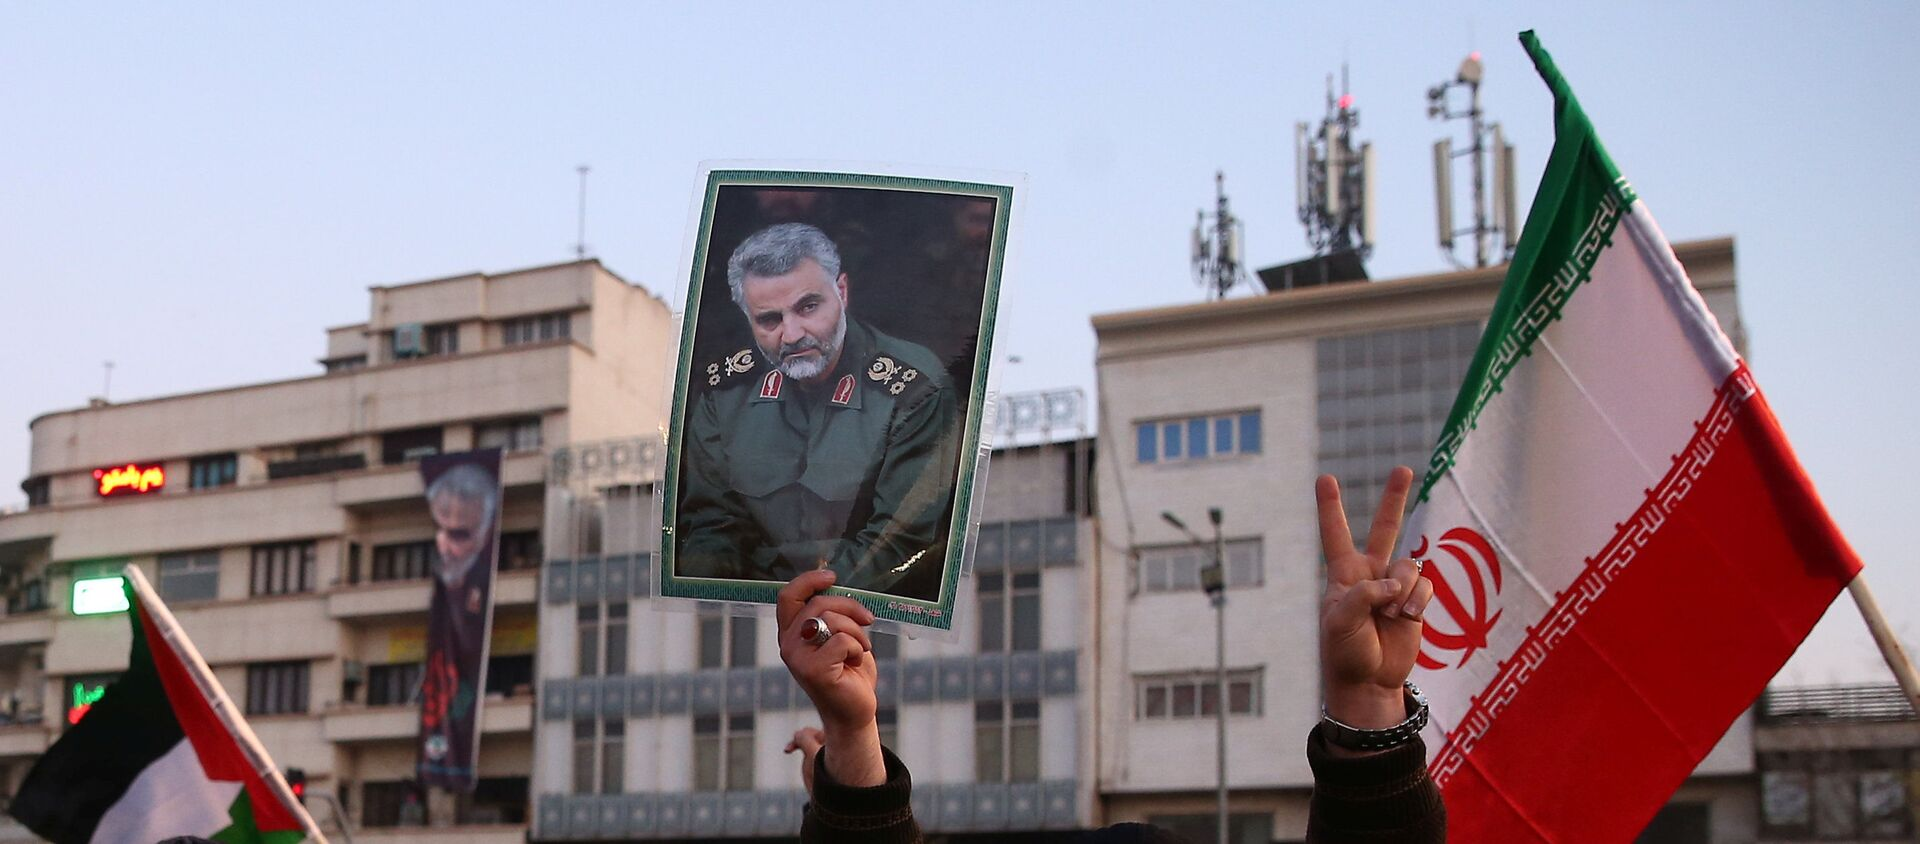 A man holds a picture of late Iranian Major-General Qassem Soleimani, as people celebrate in the street after Iran launched missiles at U.S.-led forces in Iraq, in Tehran, Iran - Sputnik International, 1920, 07.02.2020